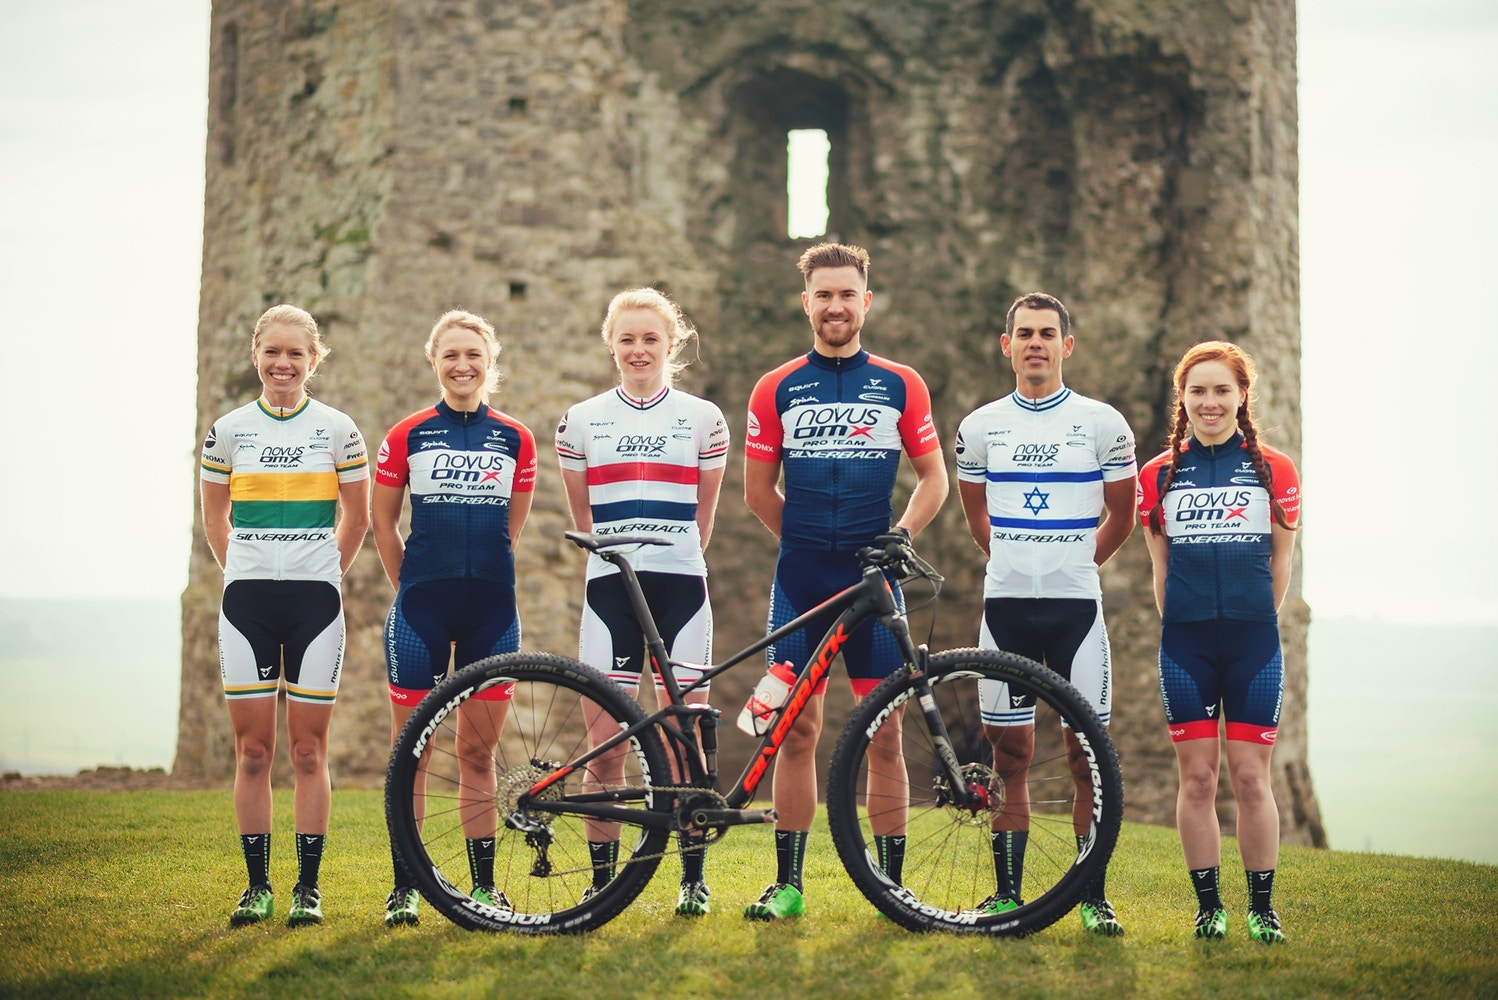 OMX Update – Top Class Racing with Top 5 Results!